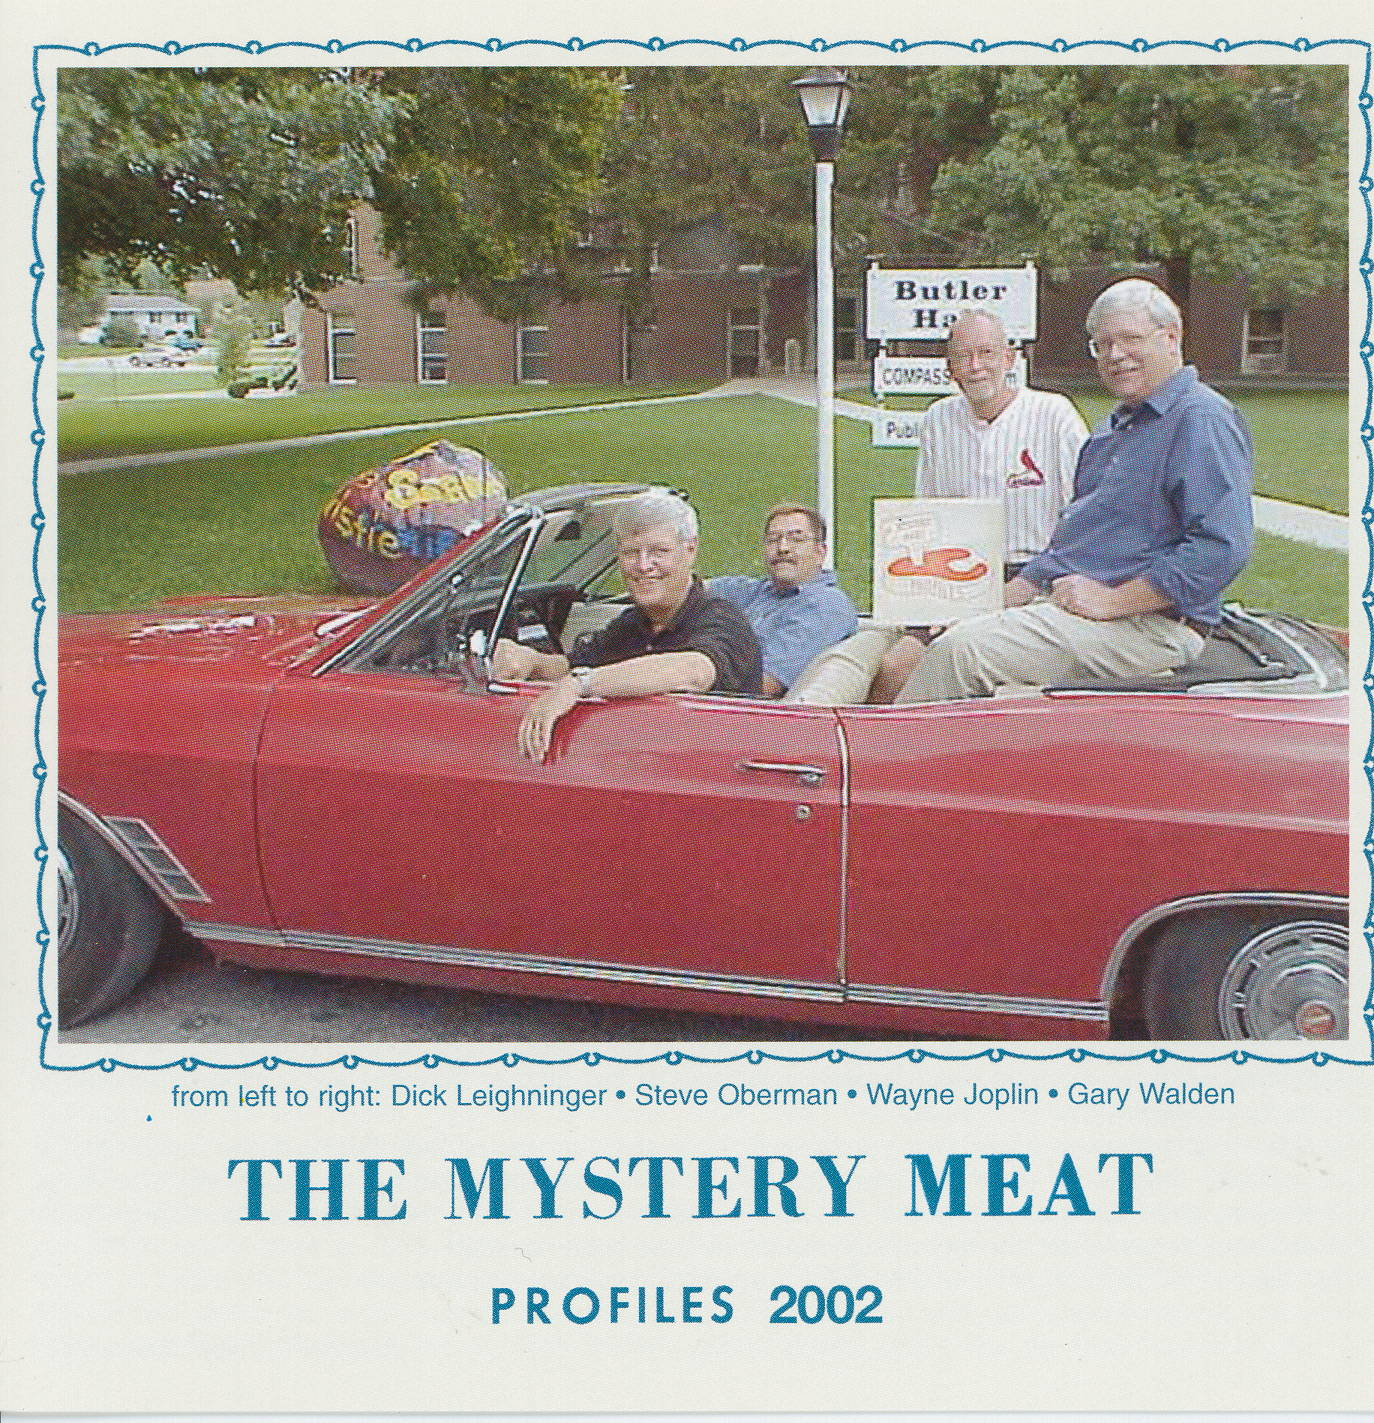 The Mystery Meat Profiles